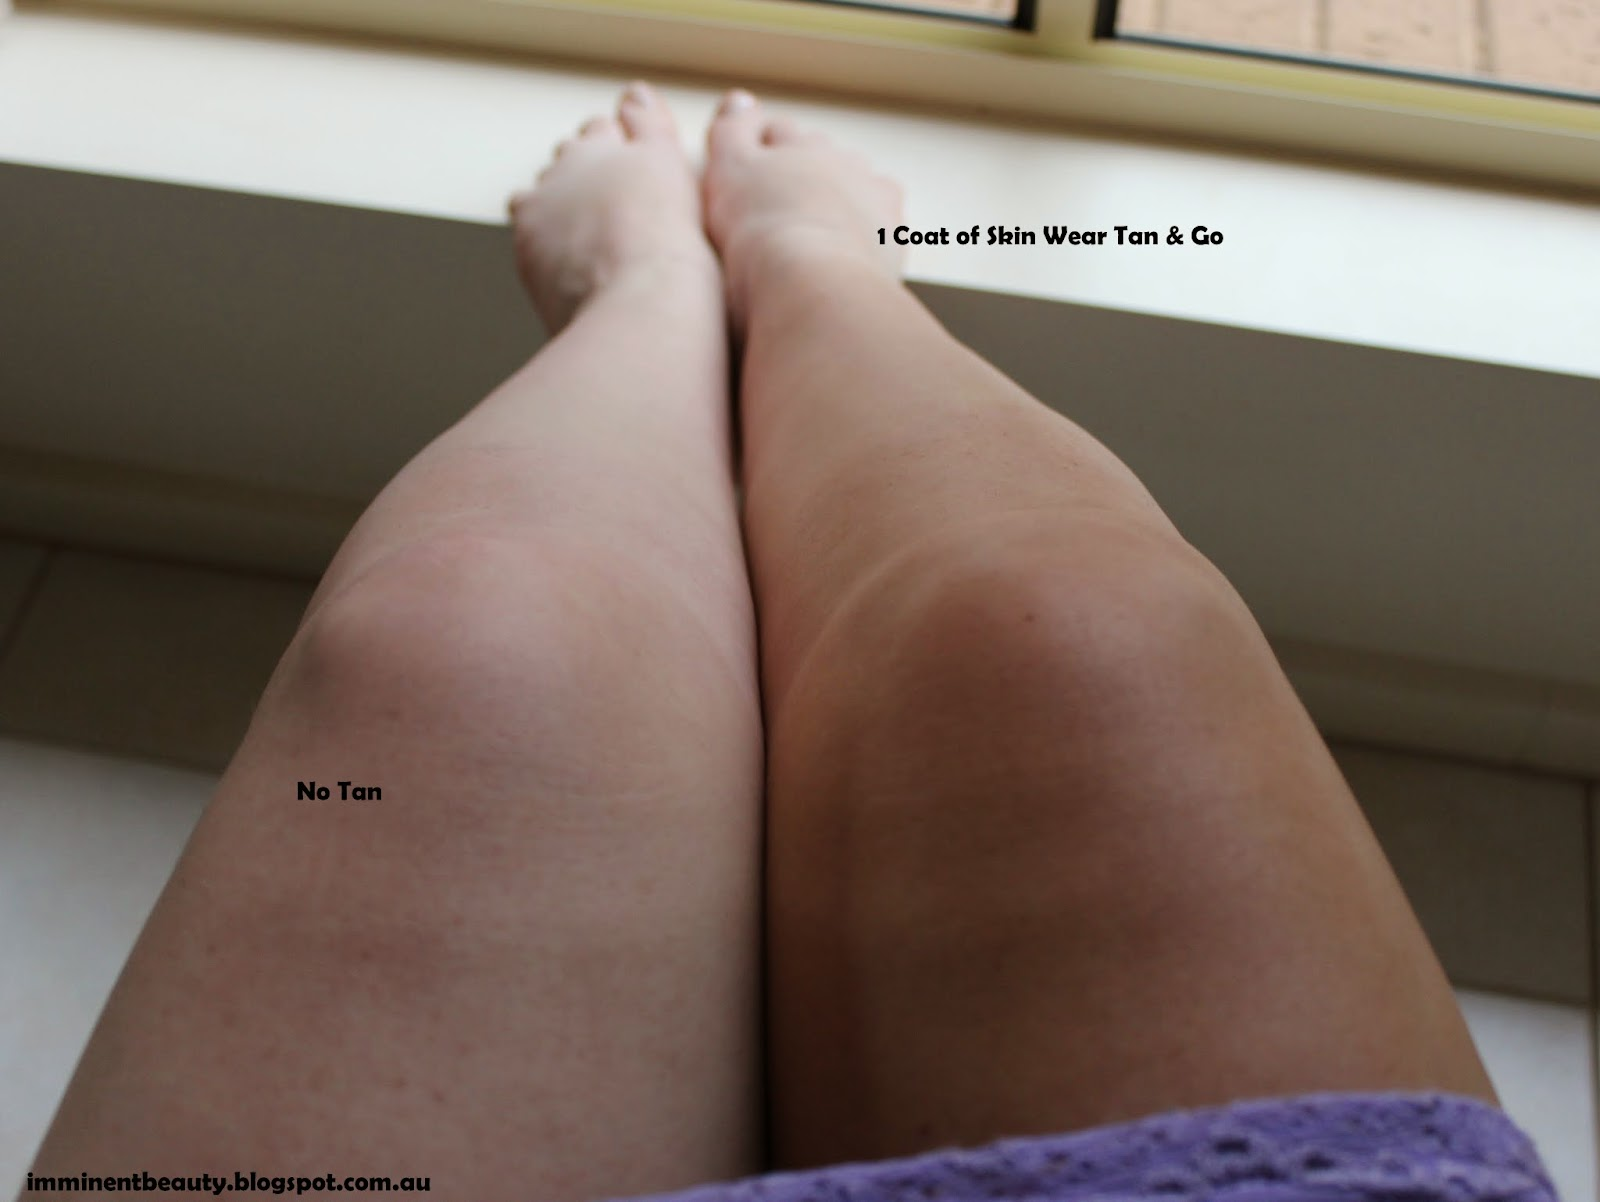 Before and after picture of the Skin Wear Tan & Go Professional Self Tanning Mousse in Medium Bronze